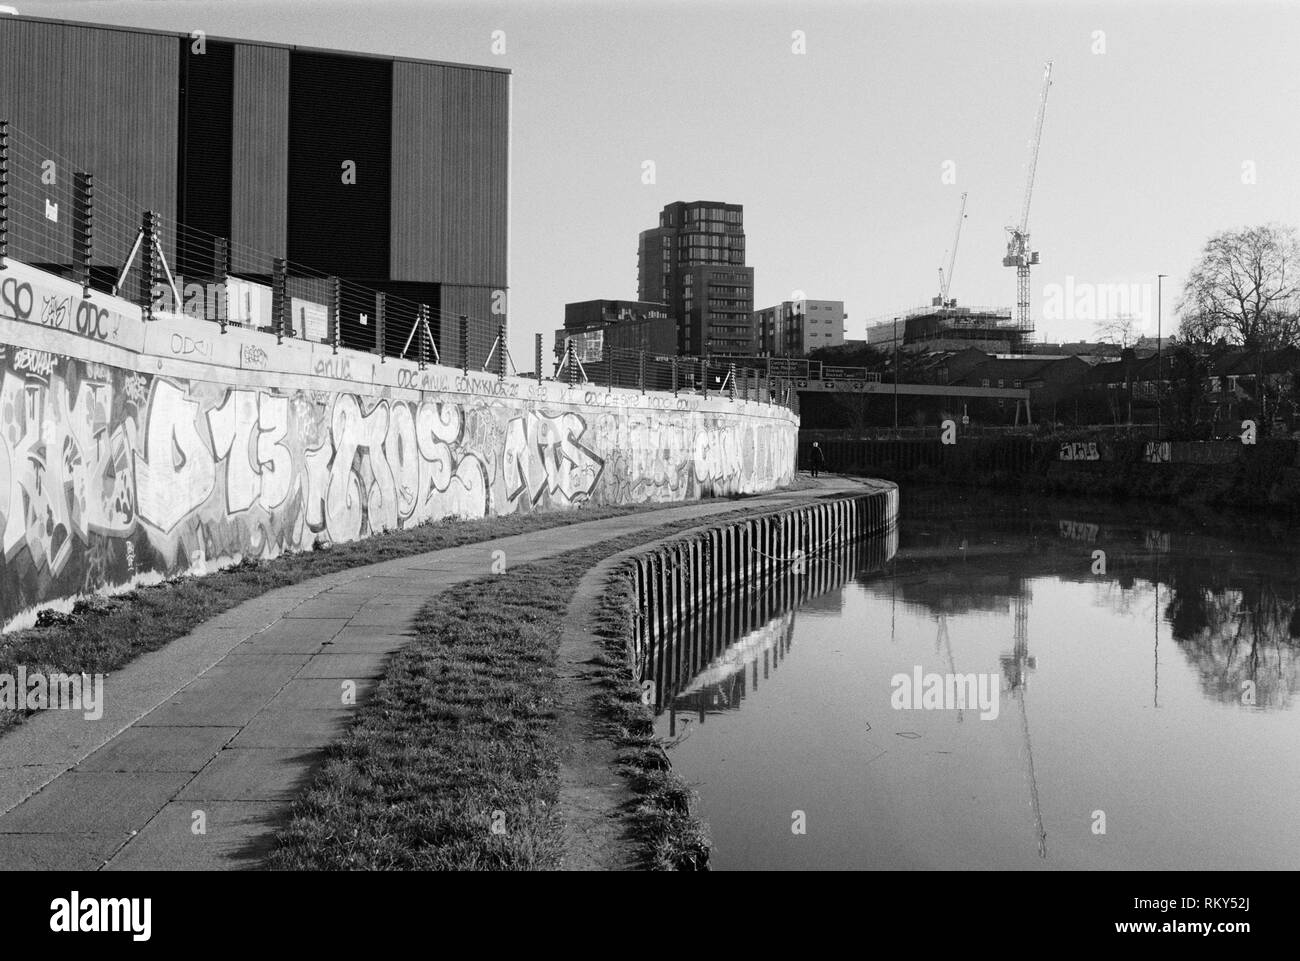 Wall with graffiti and footpath along the River Lea near Bromley-By-Bow, East London, UK, with modern buildings in background - Stock Image